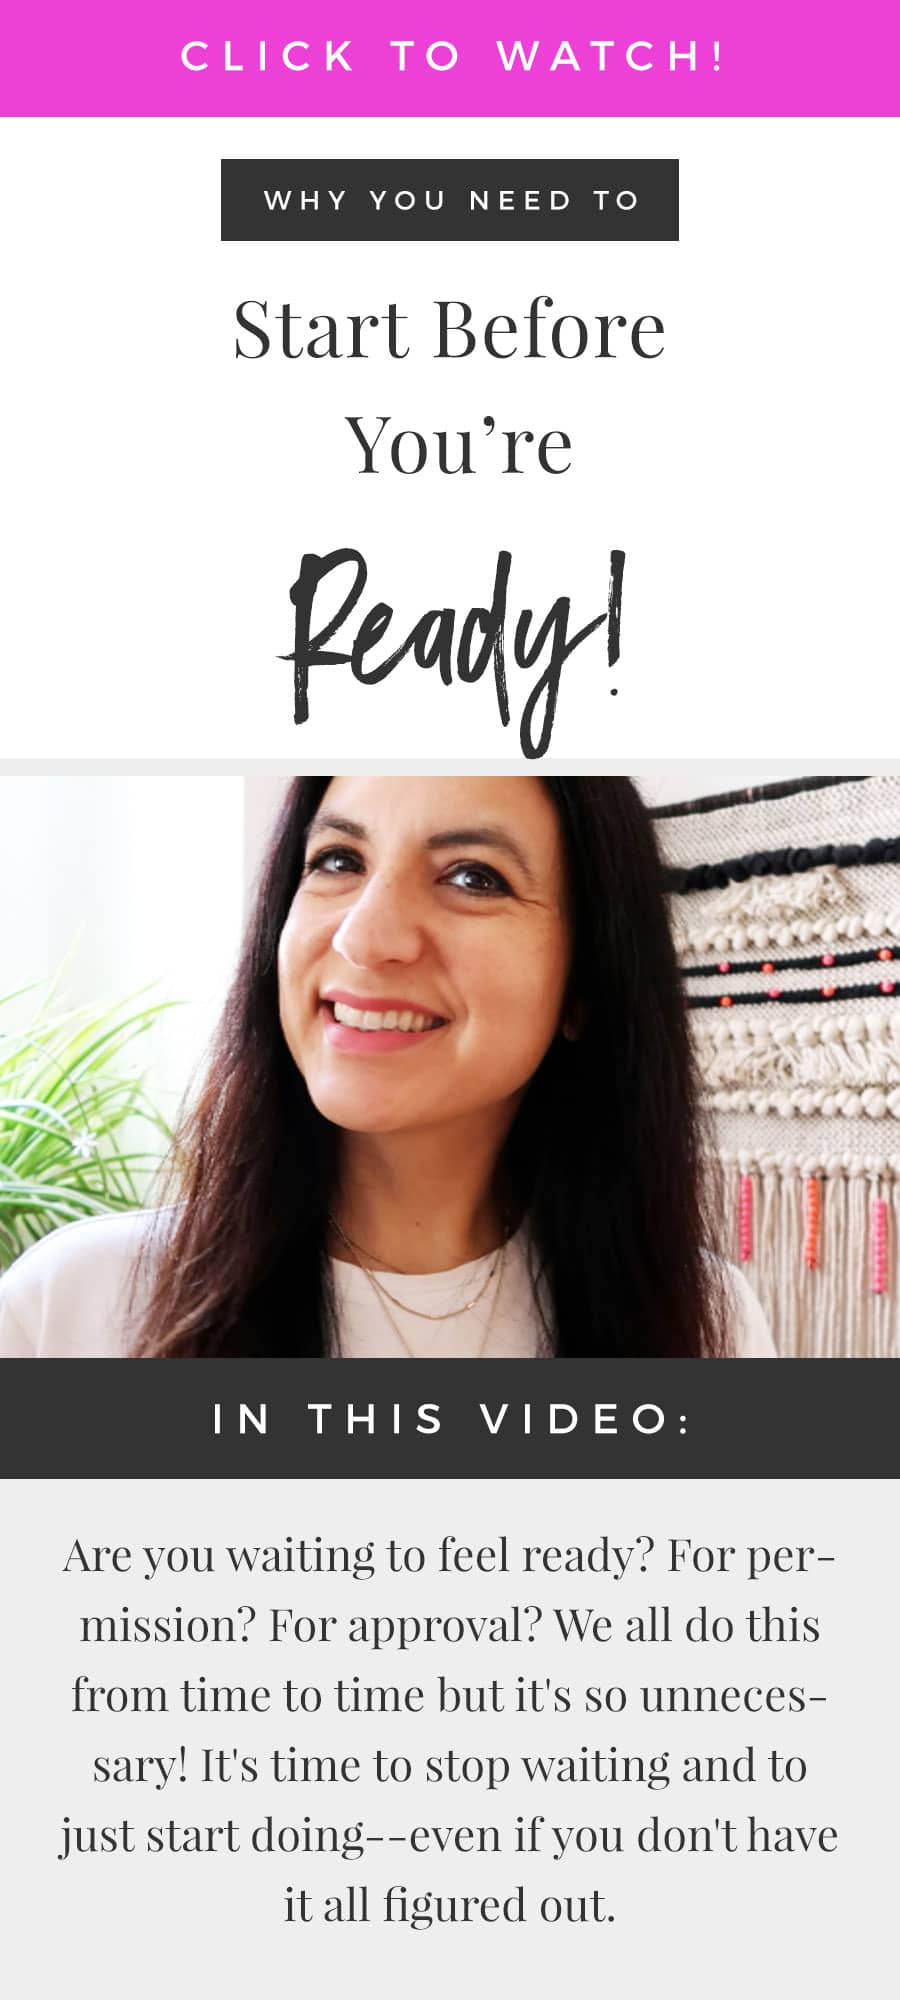 Why You Need To Start Before You're Ready